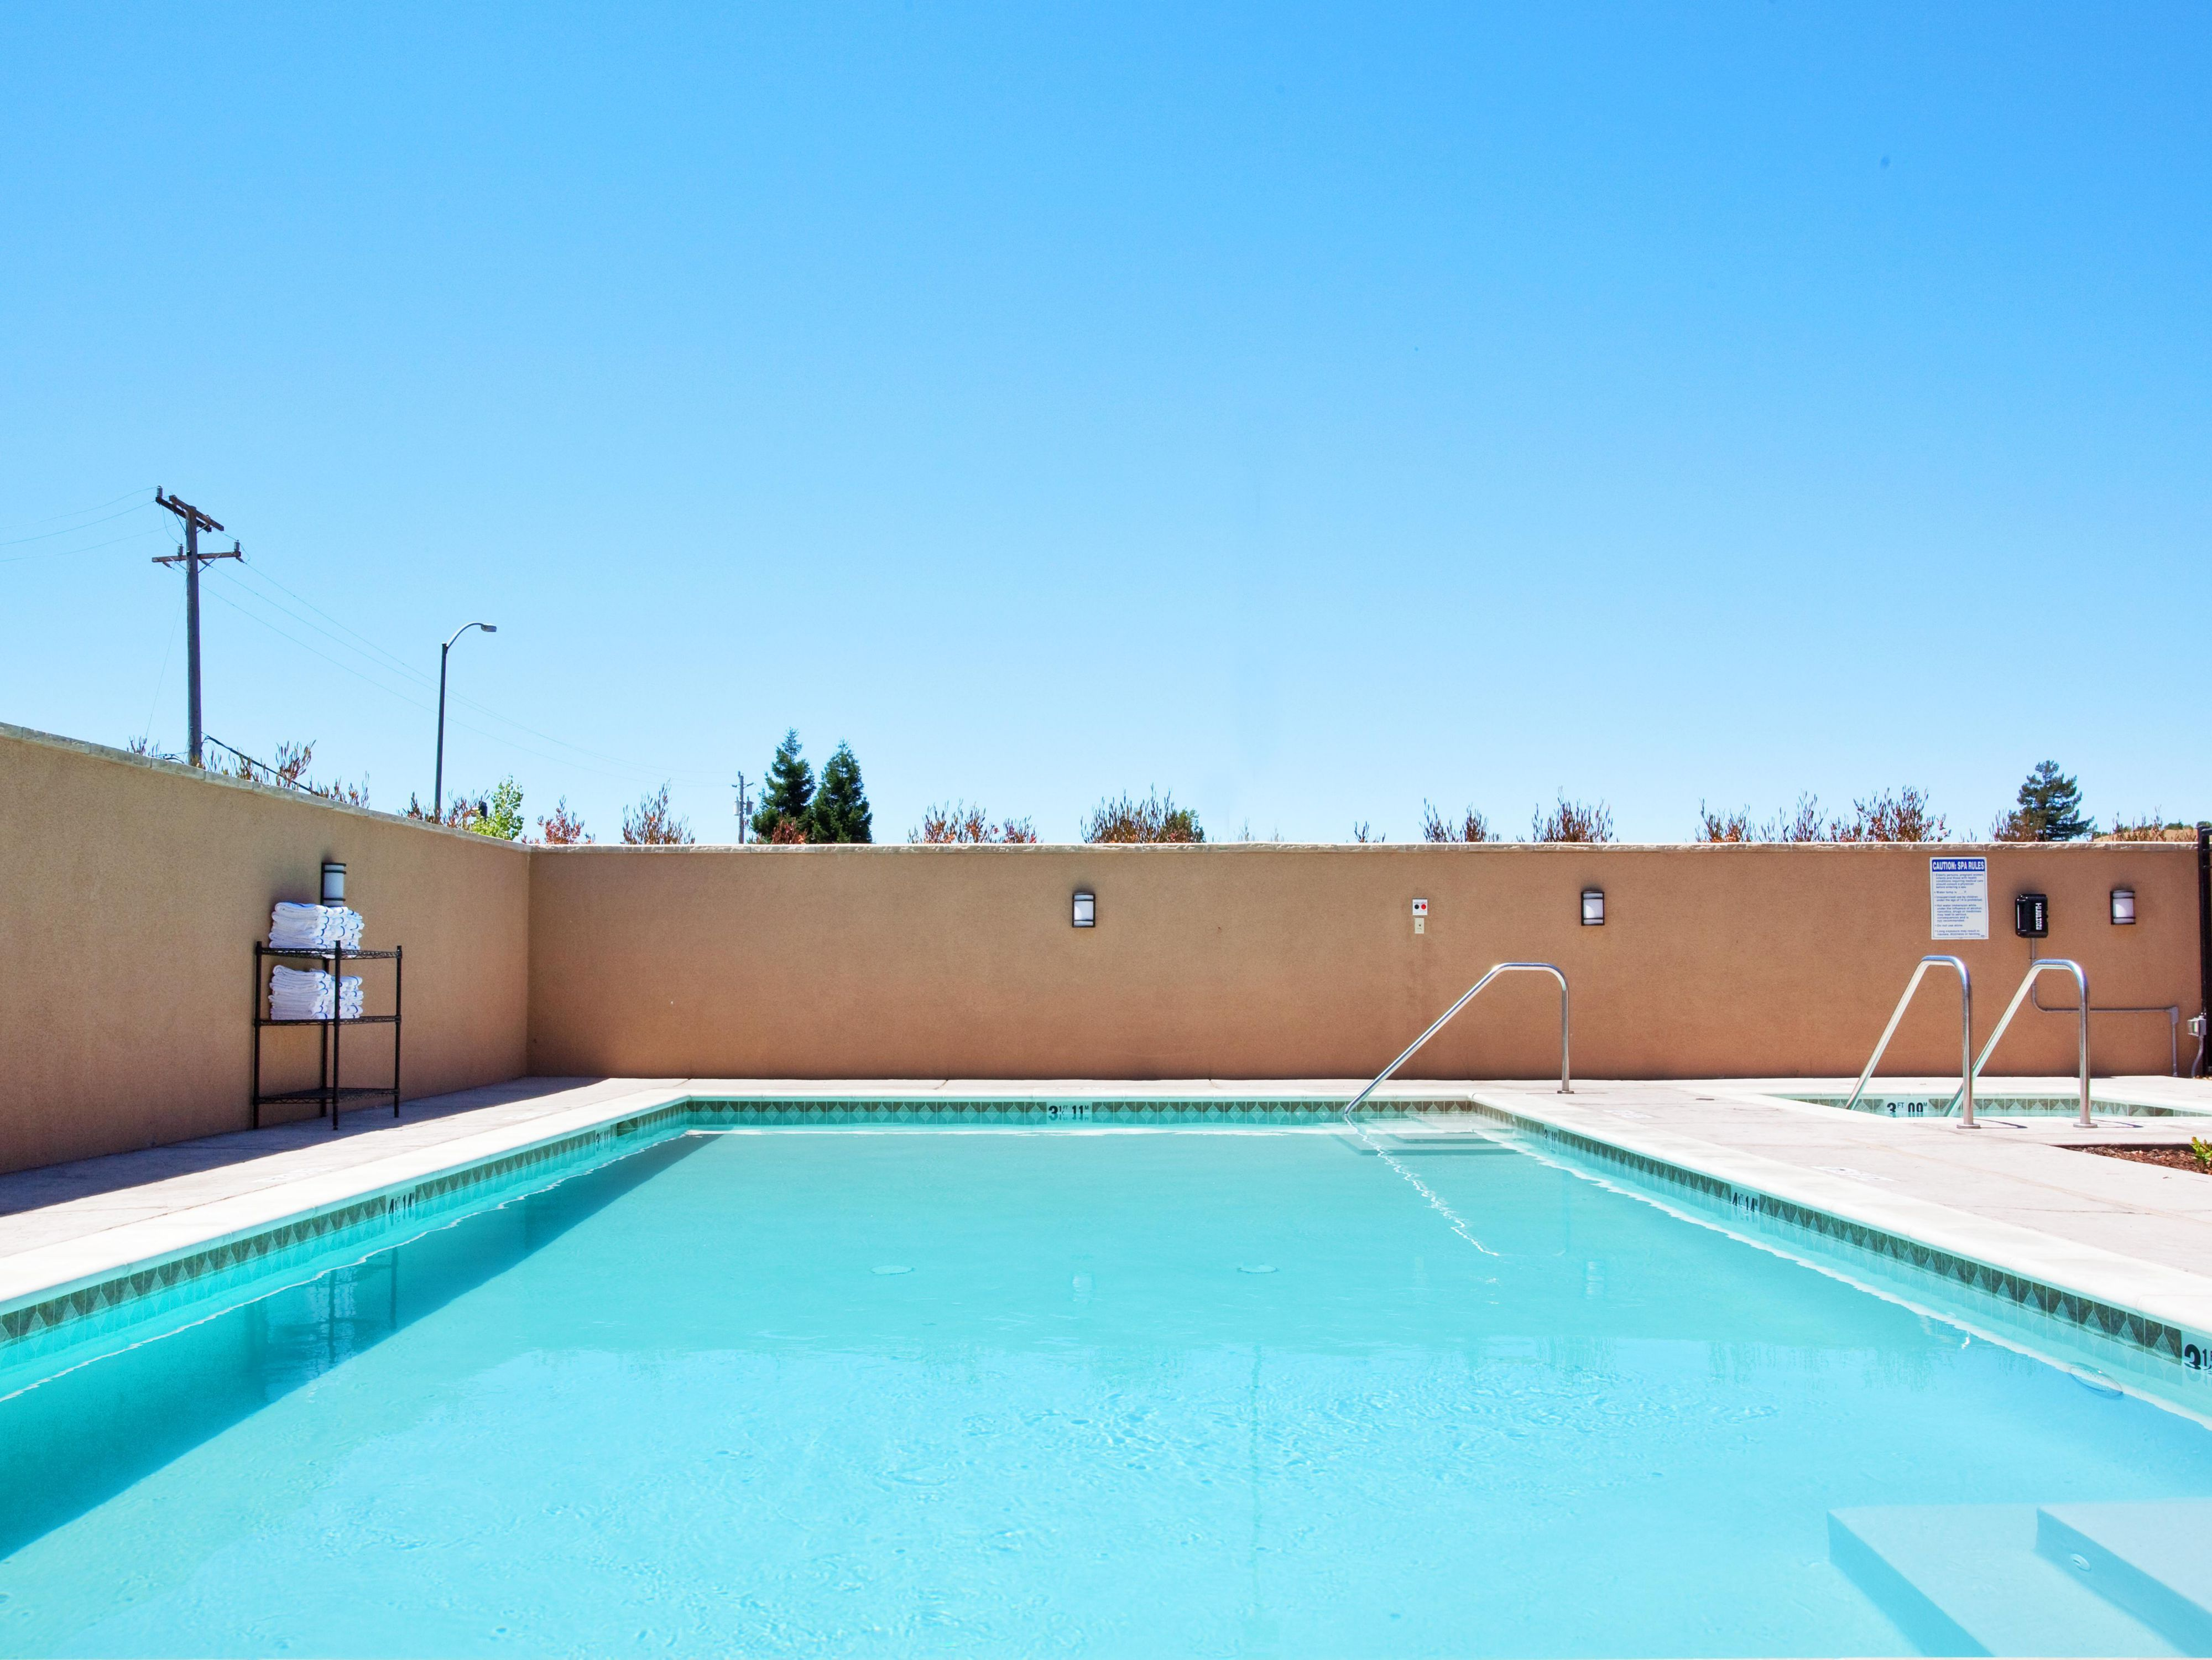 Go for a swim in our large pool - American Canyon Hotel